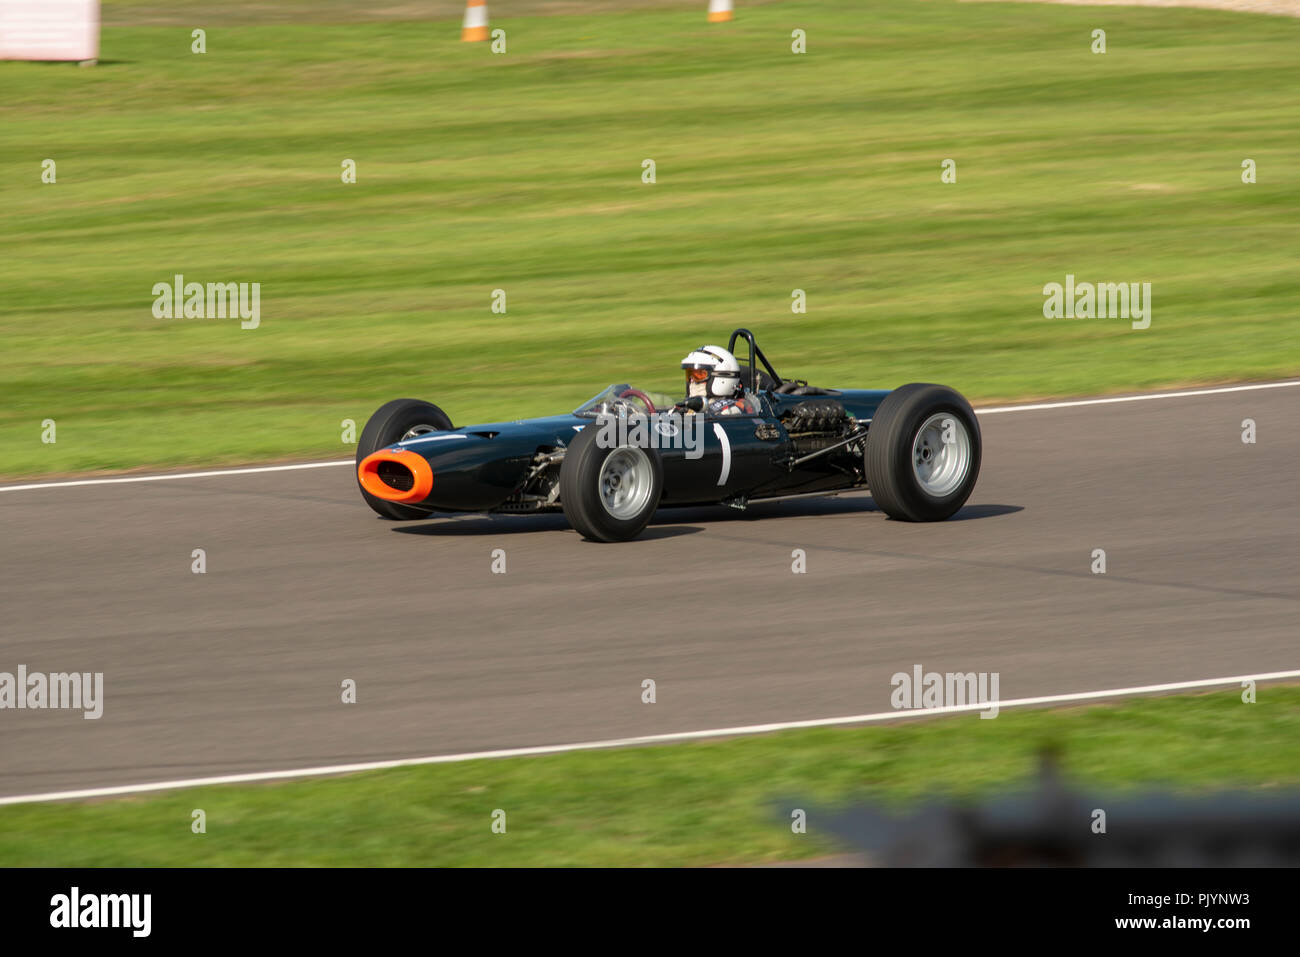 Goodwood, UK. 9th Sept 2018. Richard Attwood racing in the Glover Trophy at Goodwood Revival 2018 Credit: Mircea Albeanu/Alamy Live News - Stock Image